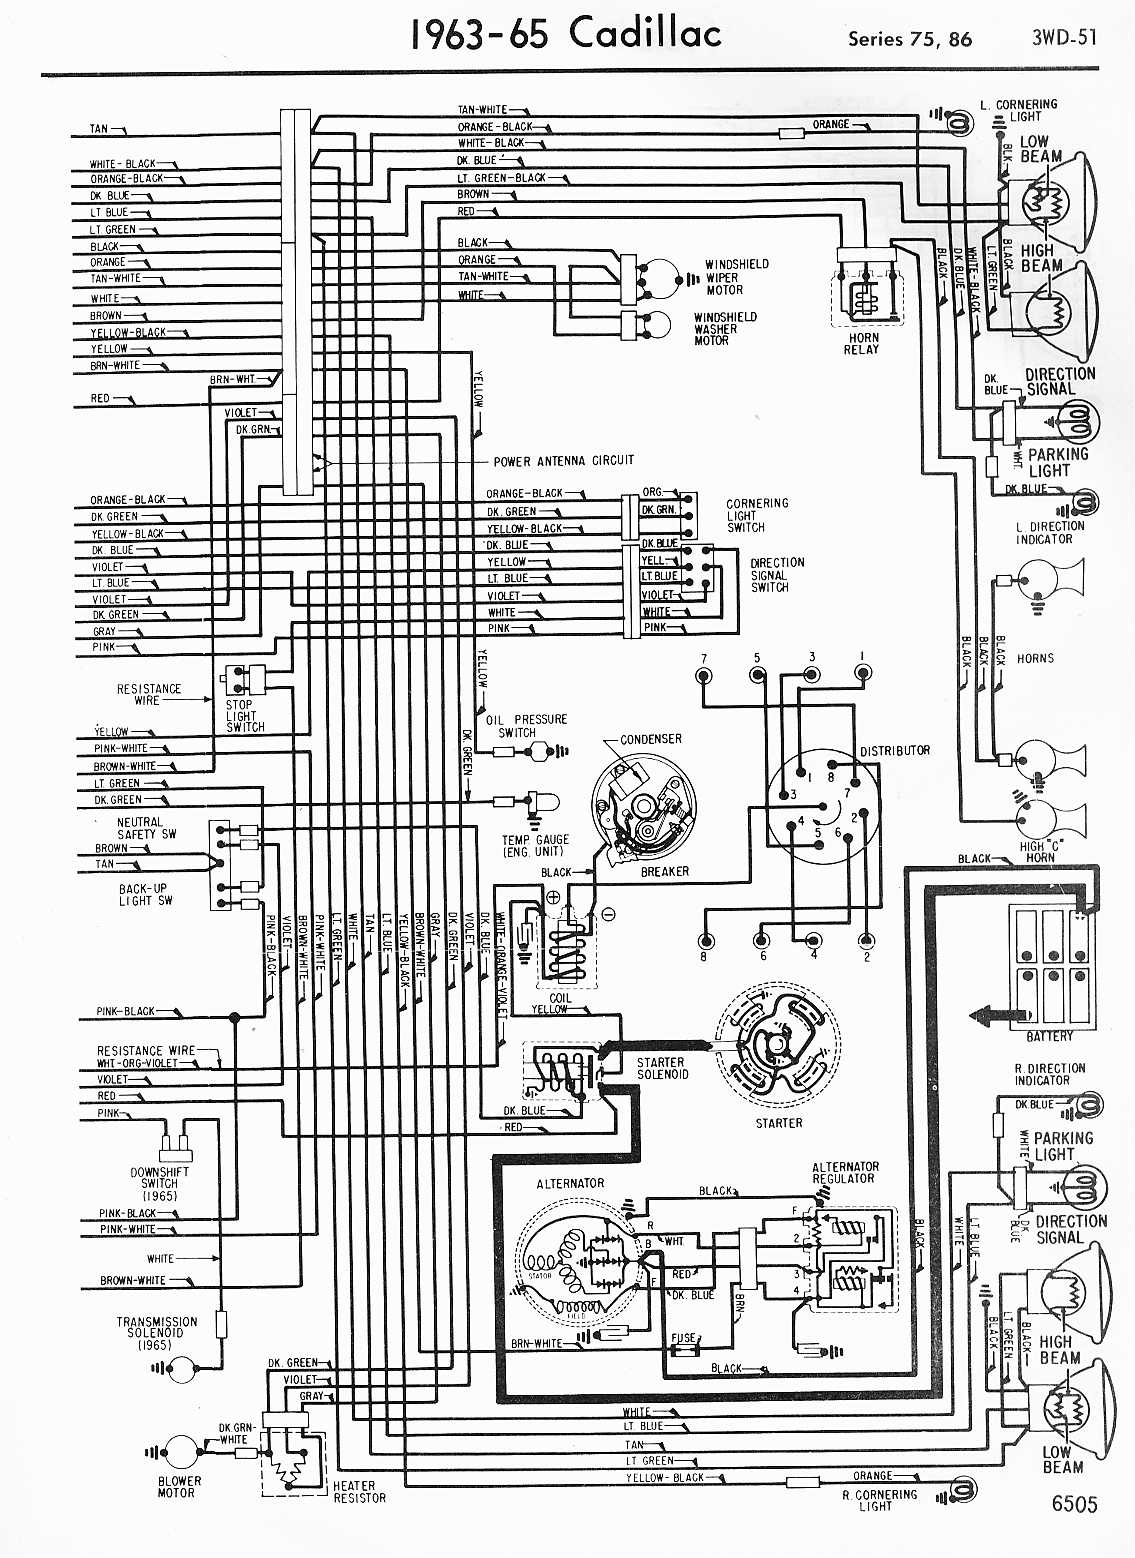 MWireCadi65_3WD 051 cadillac wiring harness ram truck wiring harness \u2022 wiring diagrams  at mifinder.co